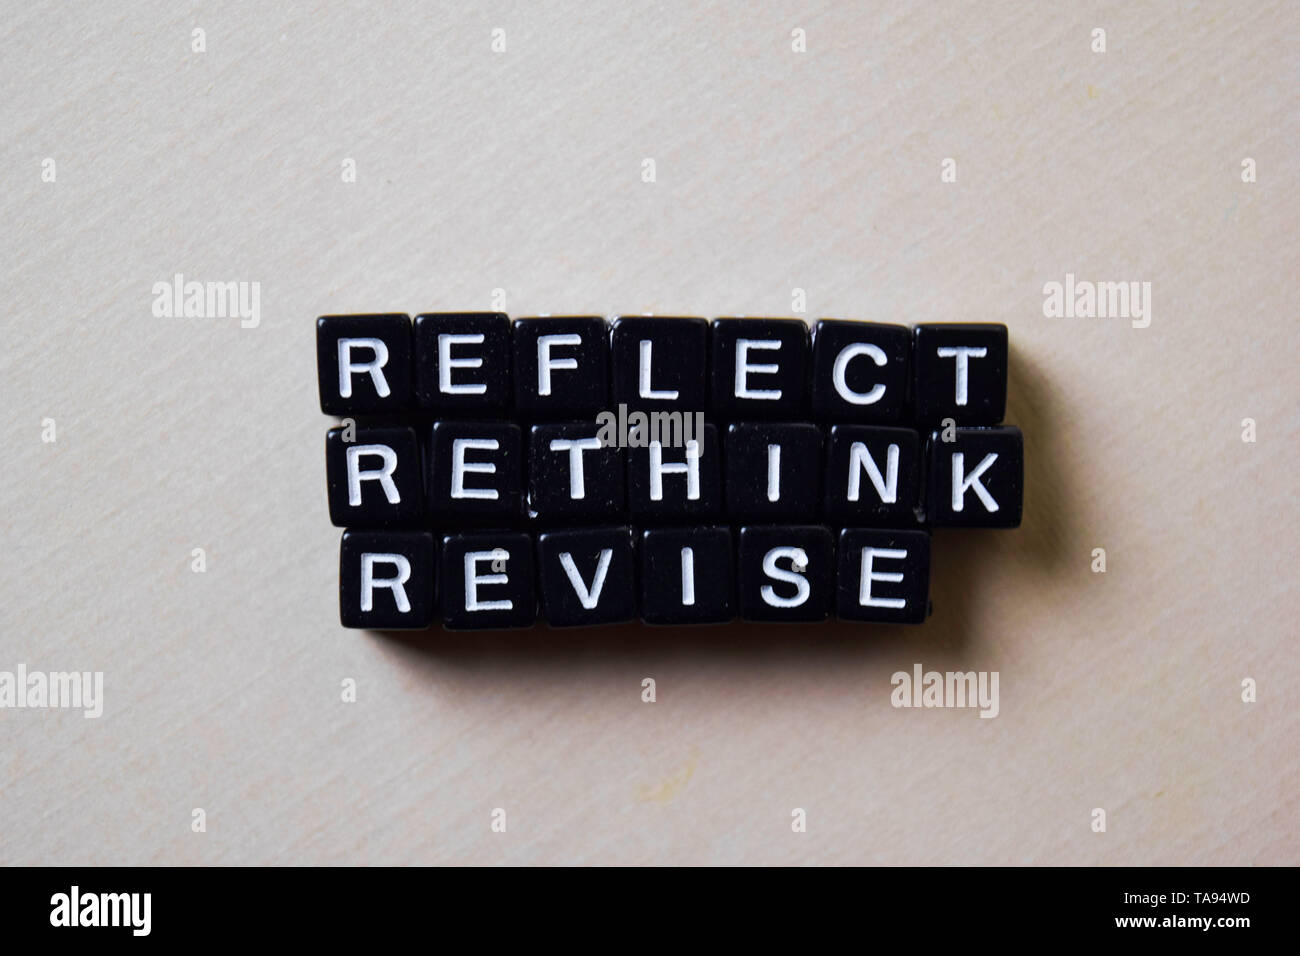 Reflect - Rethink - Revise on wooden blocks. Business and inspiration concept - Stock Image